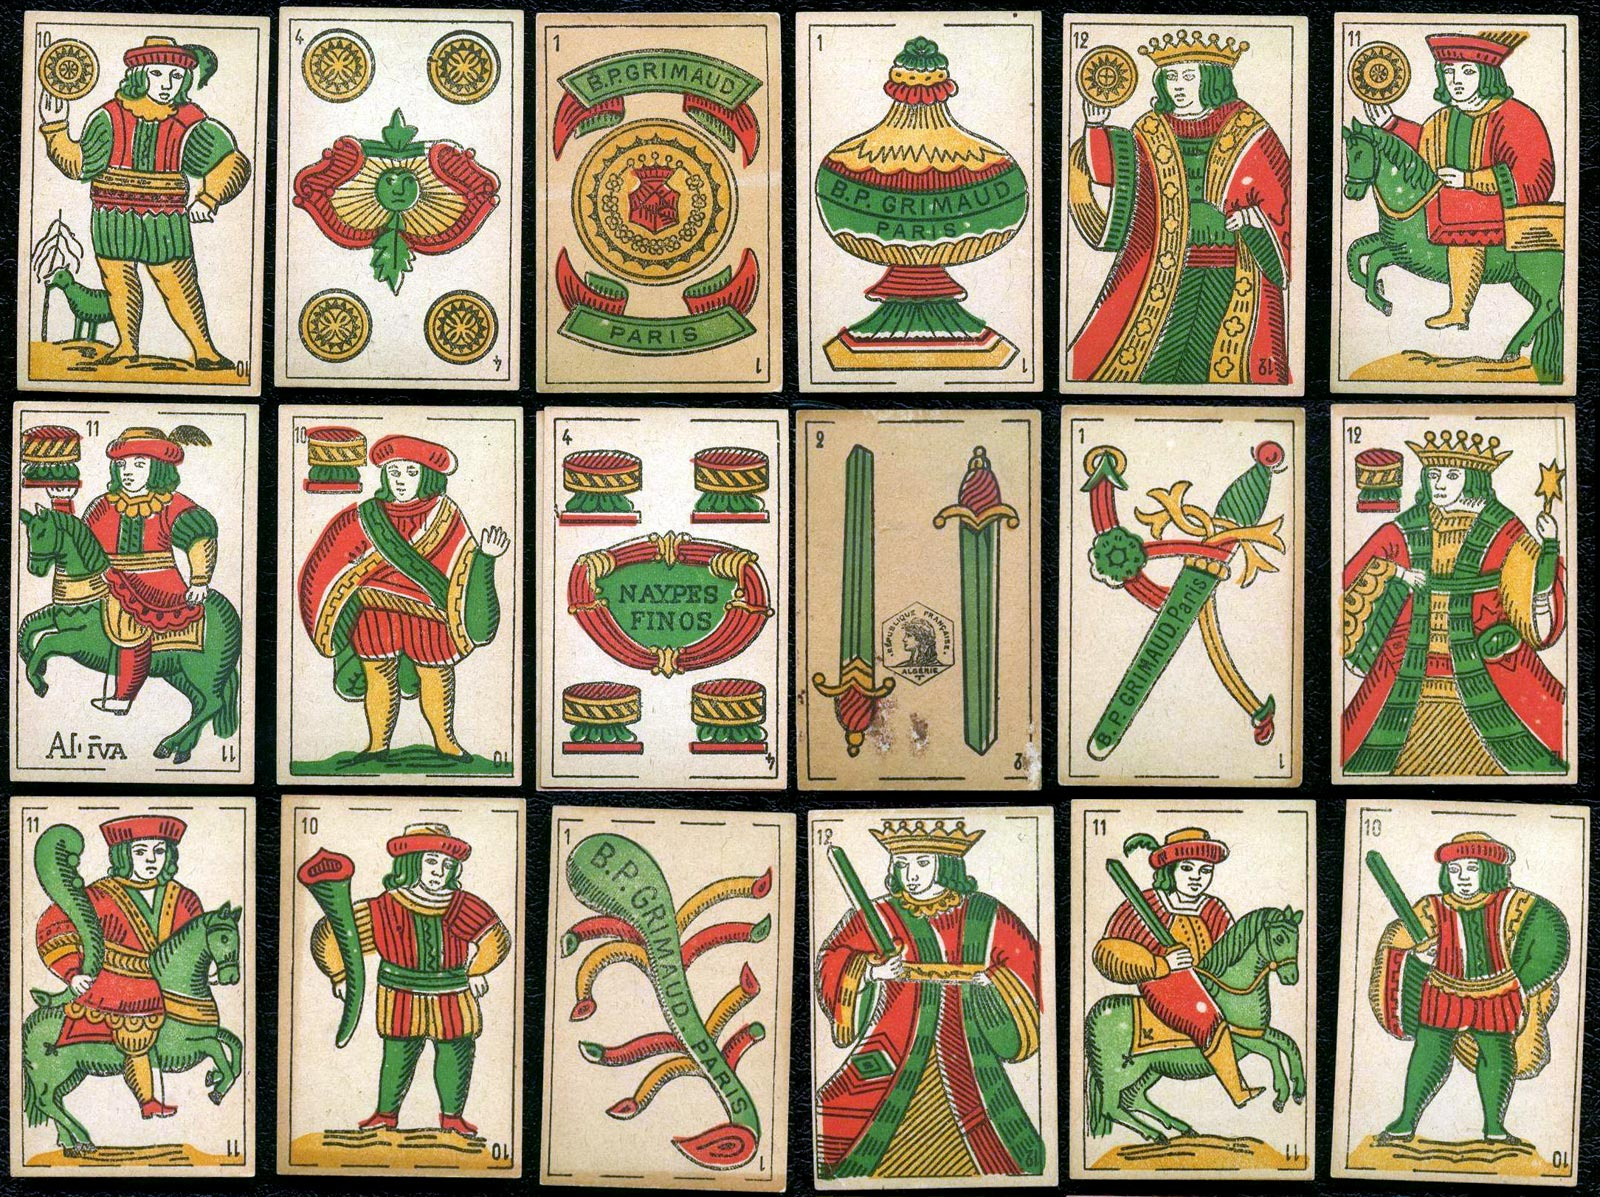 Spanish suited playing cards produced by B. P. Grimaud (Paris) for Algeria, around 1910